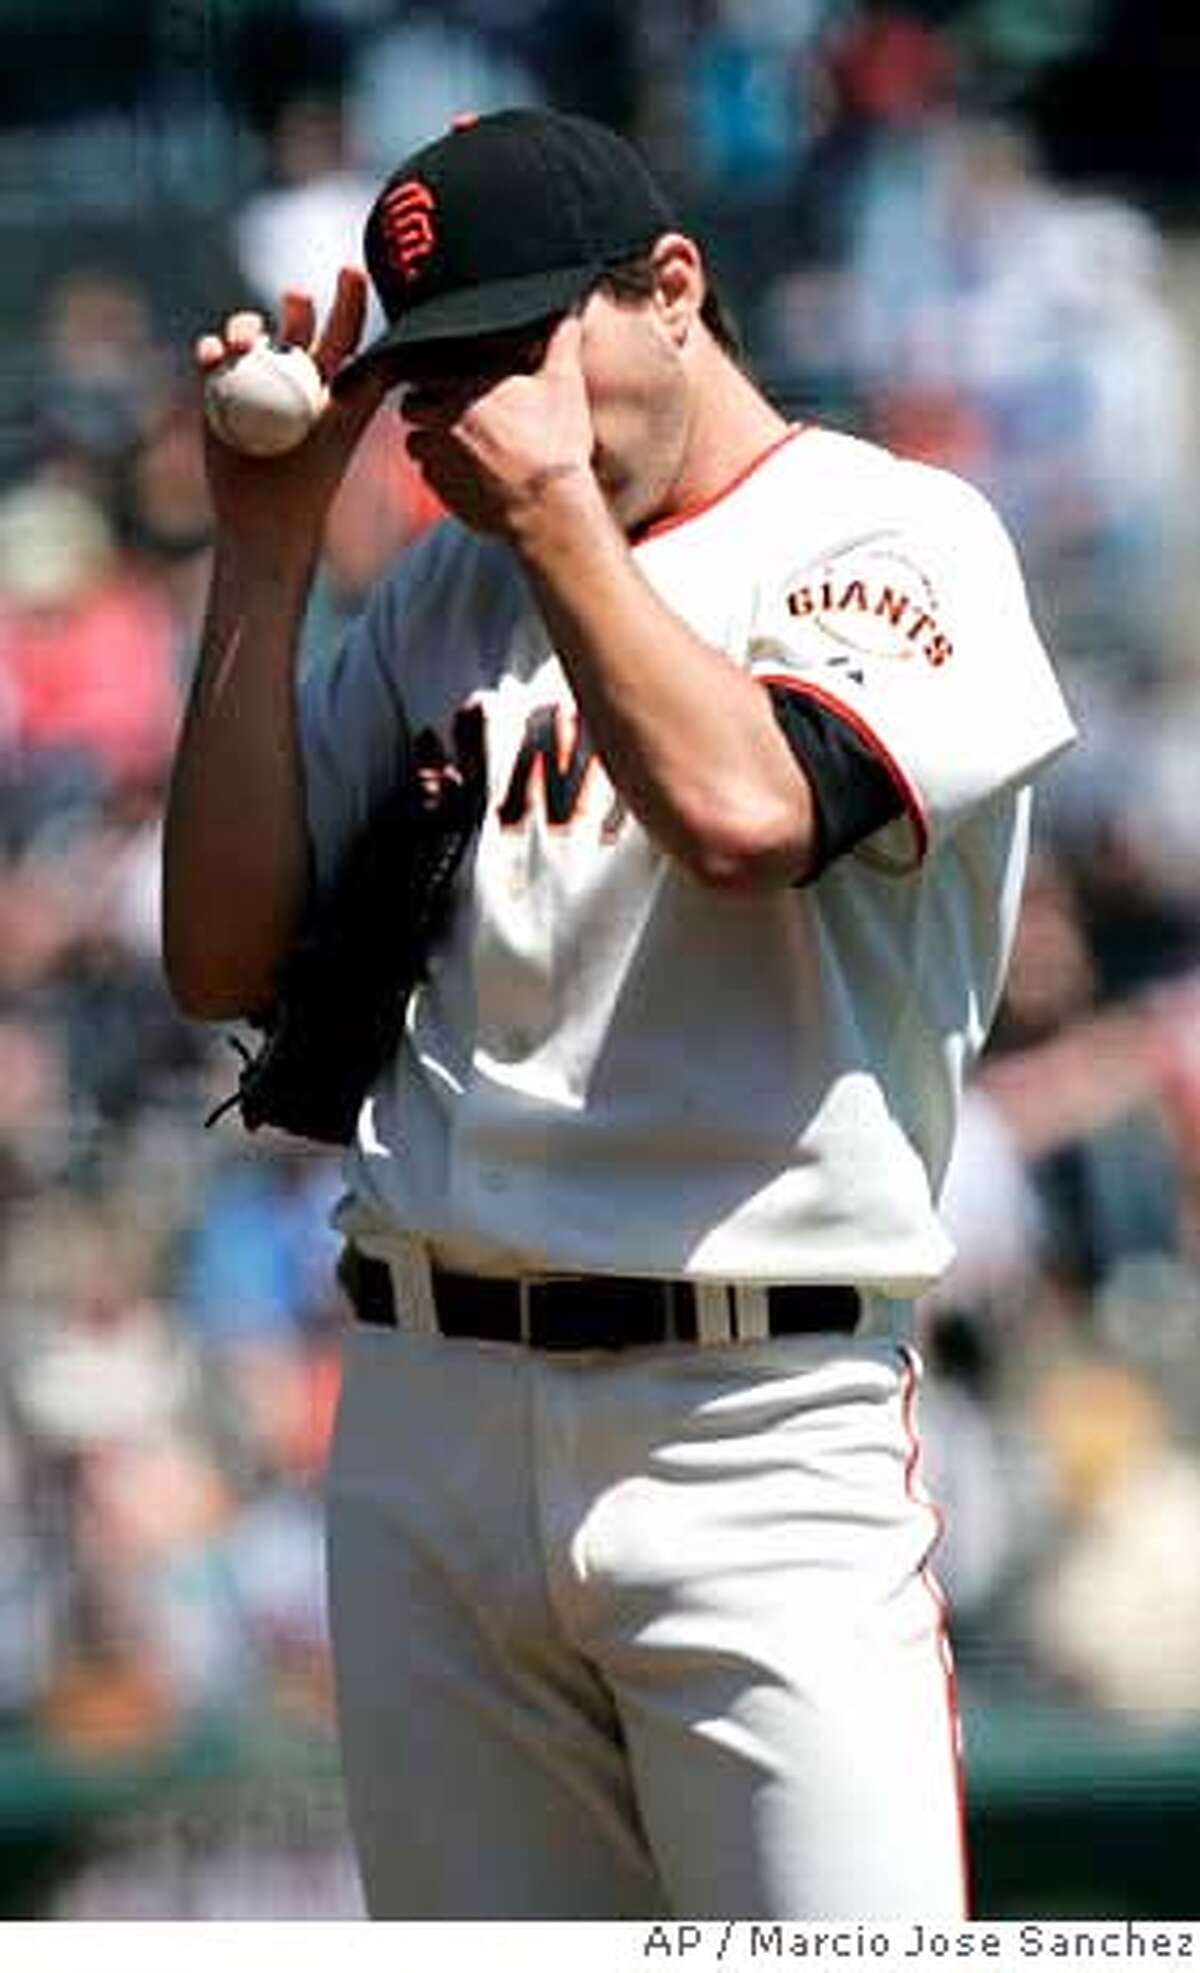 San Francisco Giants starter Barry Zito reacts after loading up the bases against the Arizona Diamondbacks in the first inning of a baseball game in San Francisco, Wednesday, April 16, 2008. Arizona won 4-1. (AP Photo/Marcio Jose Sanchez)